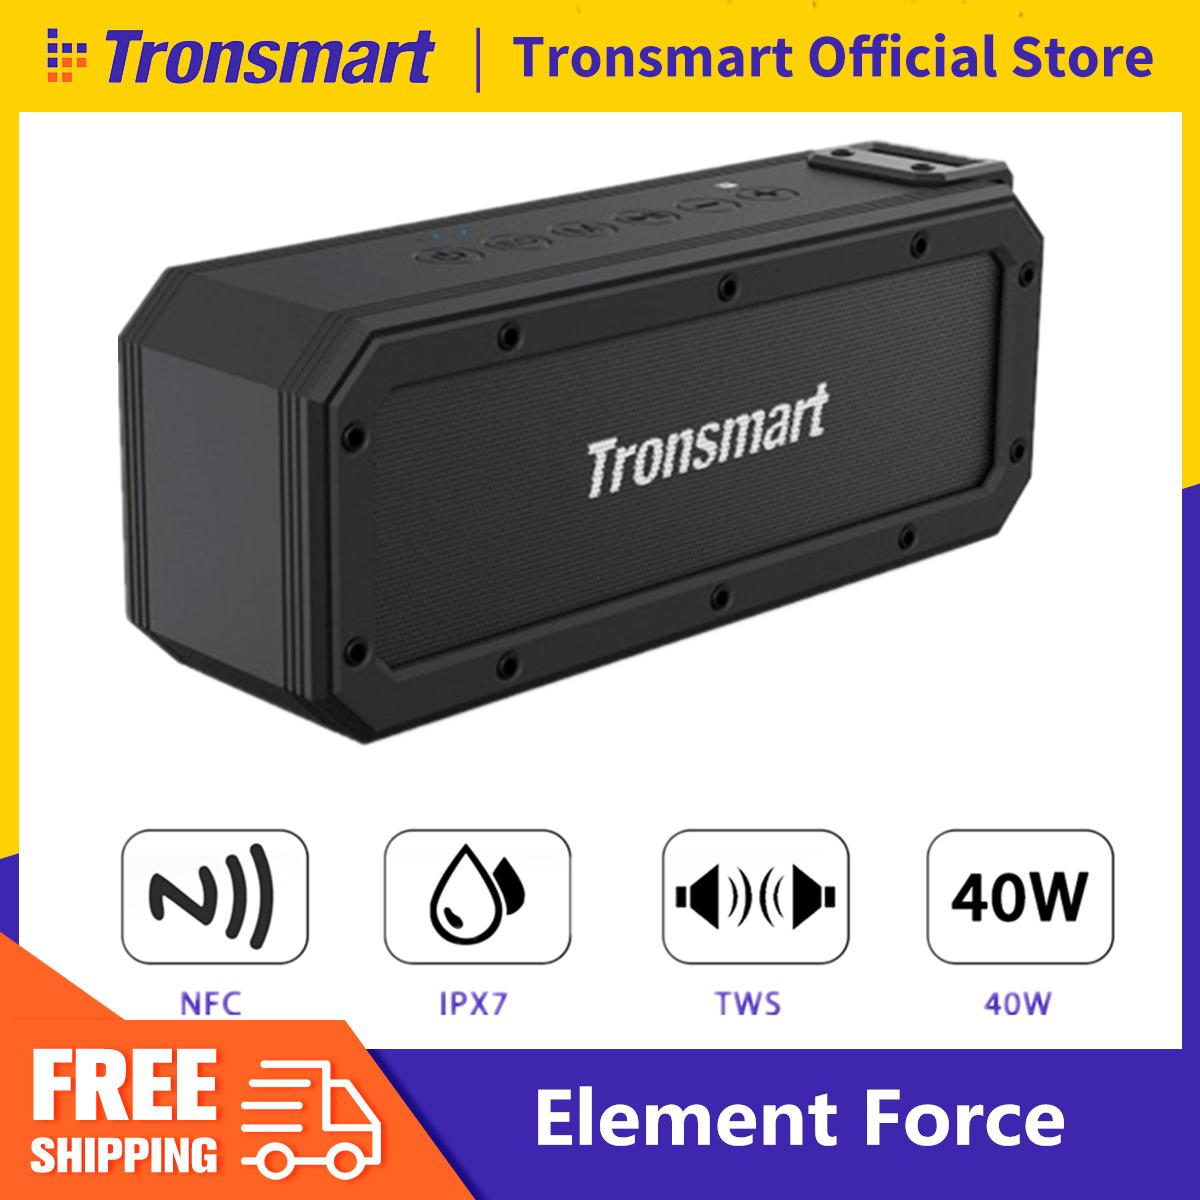 【Free Shipping + Flash Deal】Tronsmart Element Force TWS Bluetooth Speaker  Stereo IPX7 Portable Subwoofer